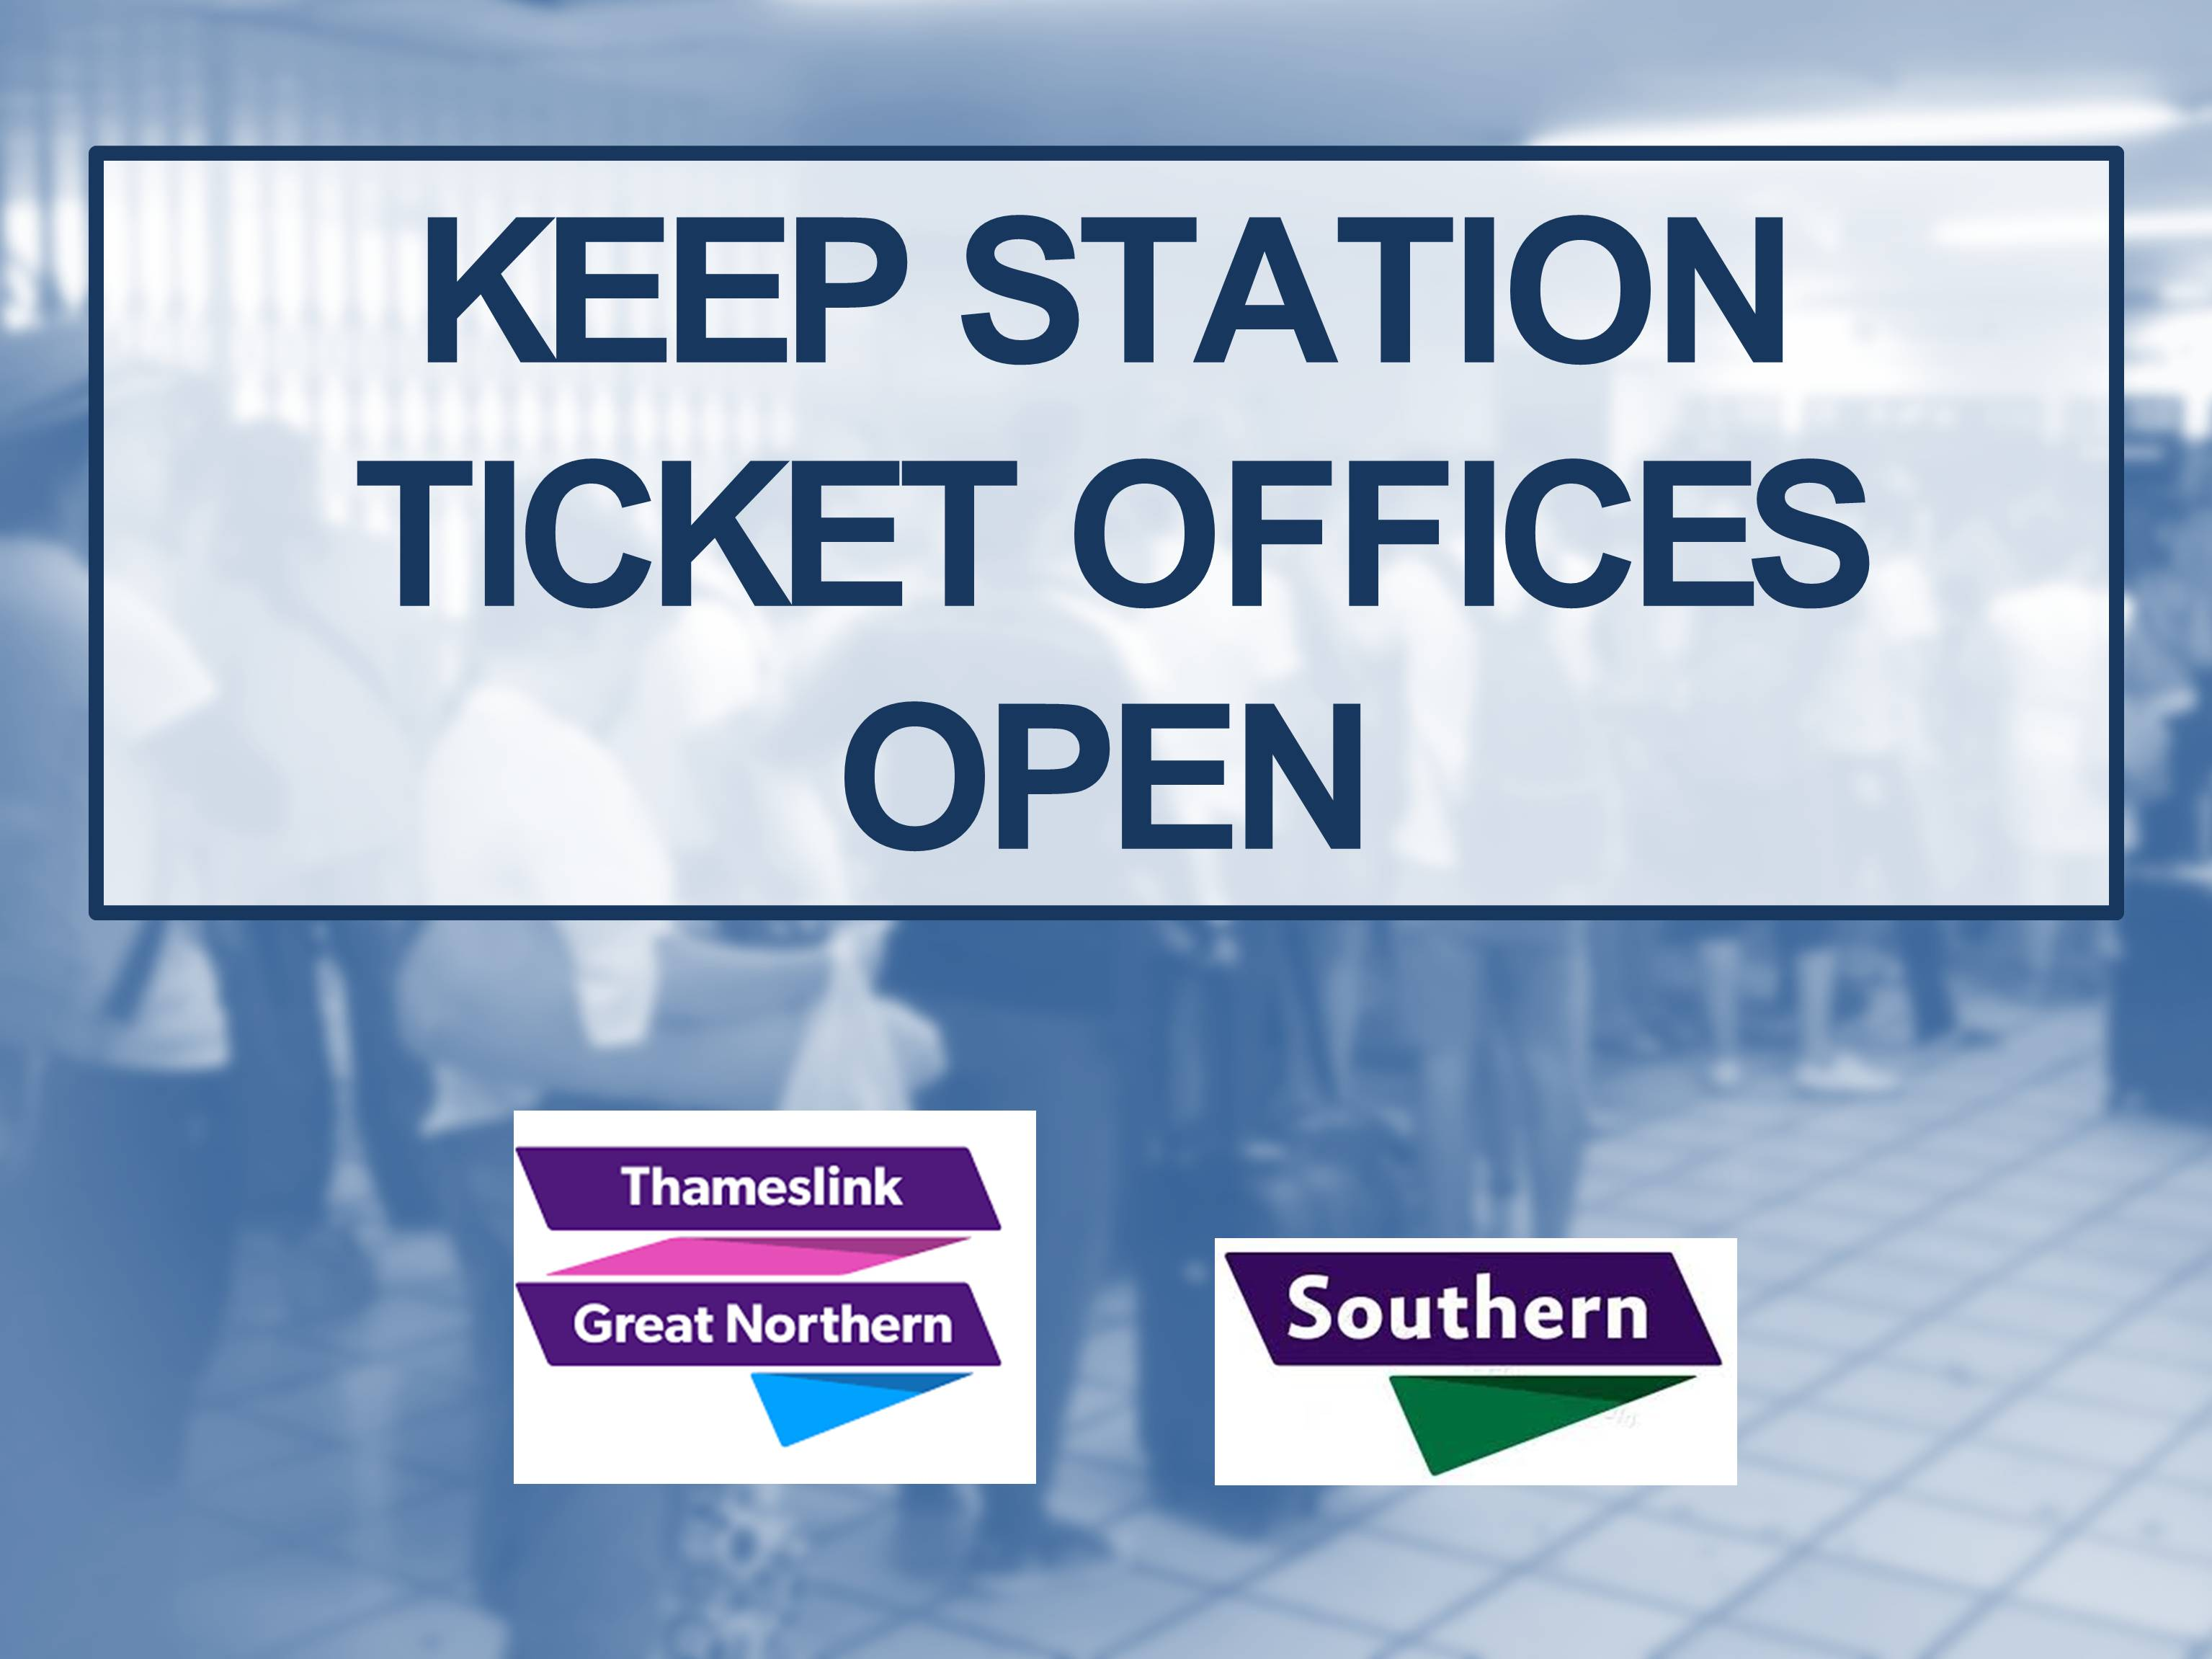 Next phase of fight over rail ticket office closures